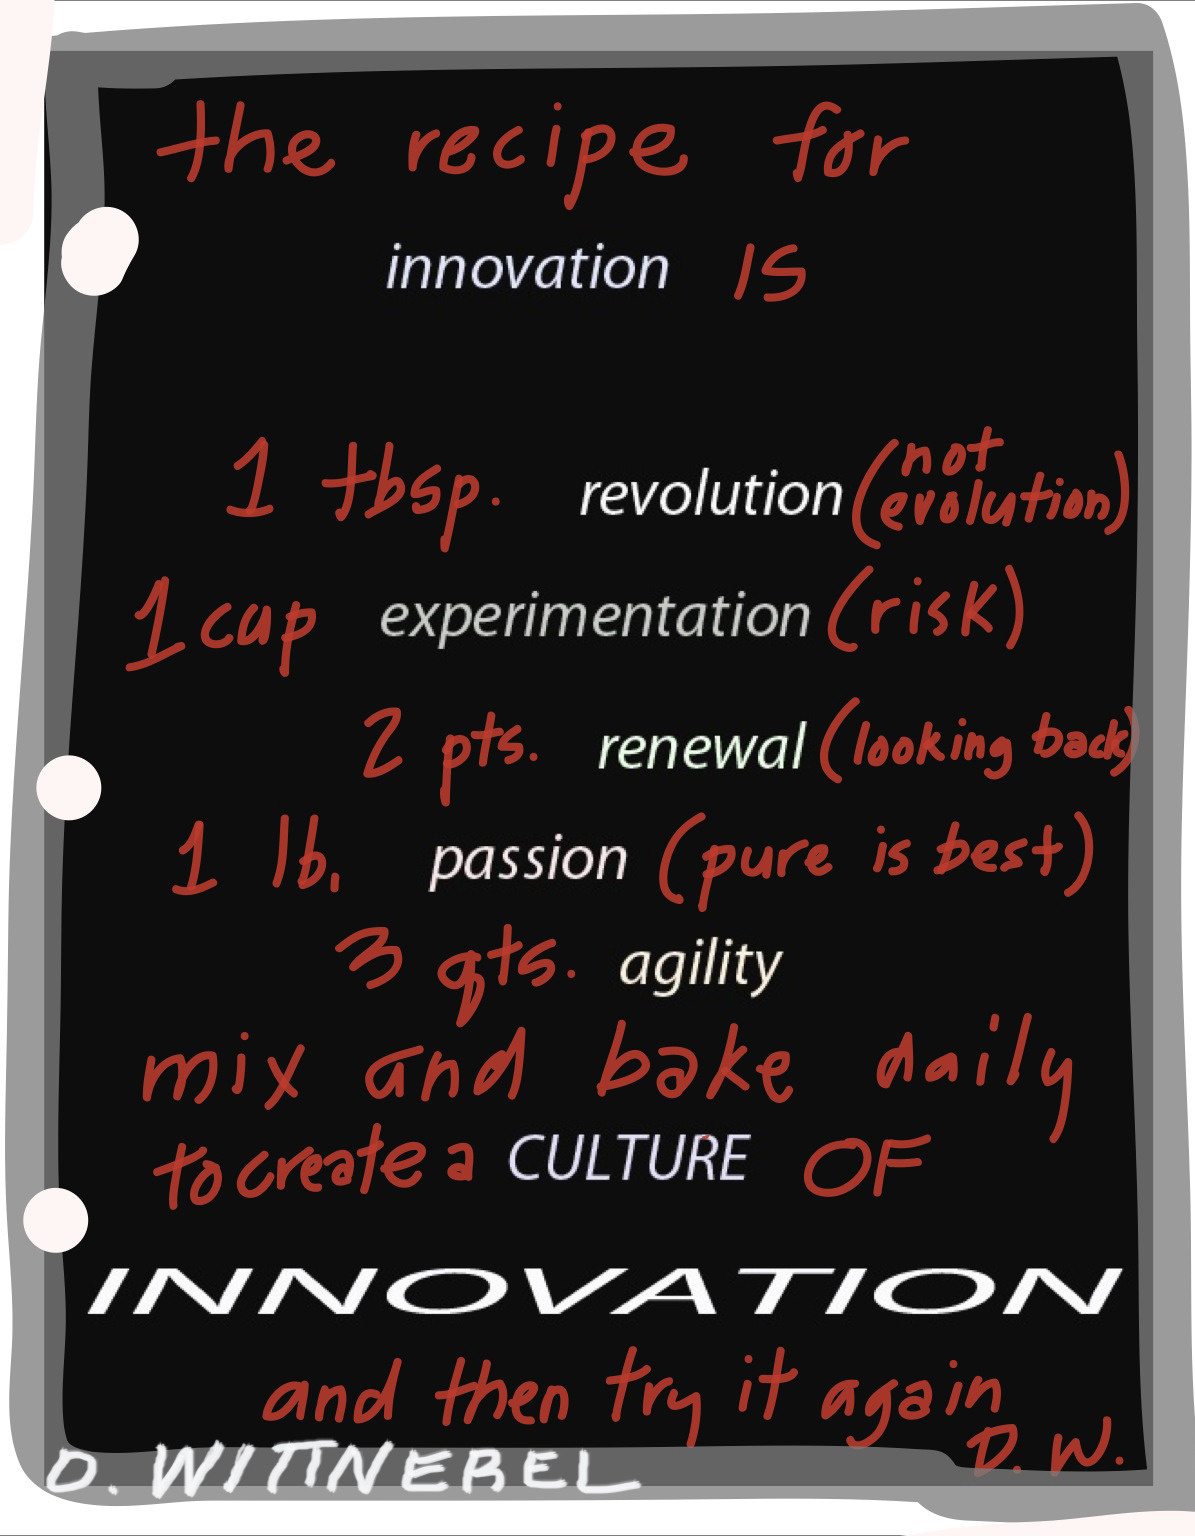 The recipe for innovation: create a culture of innovation.